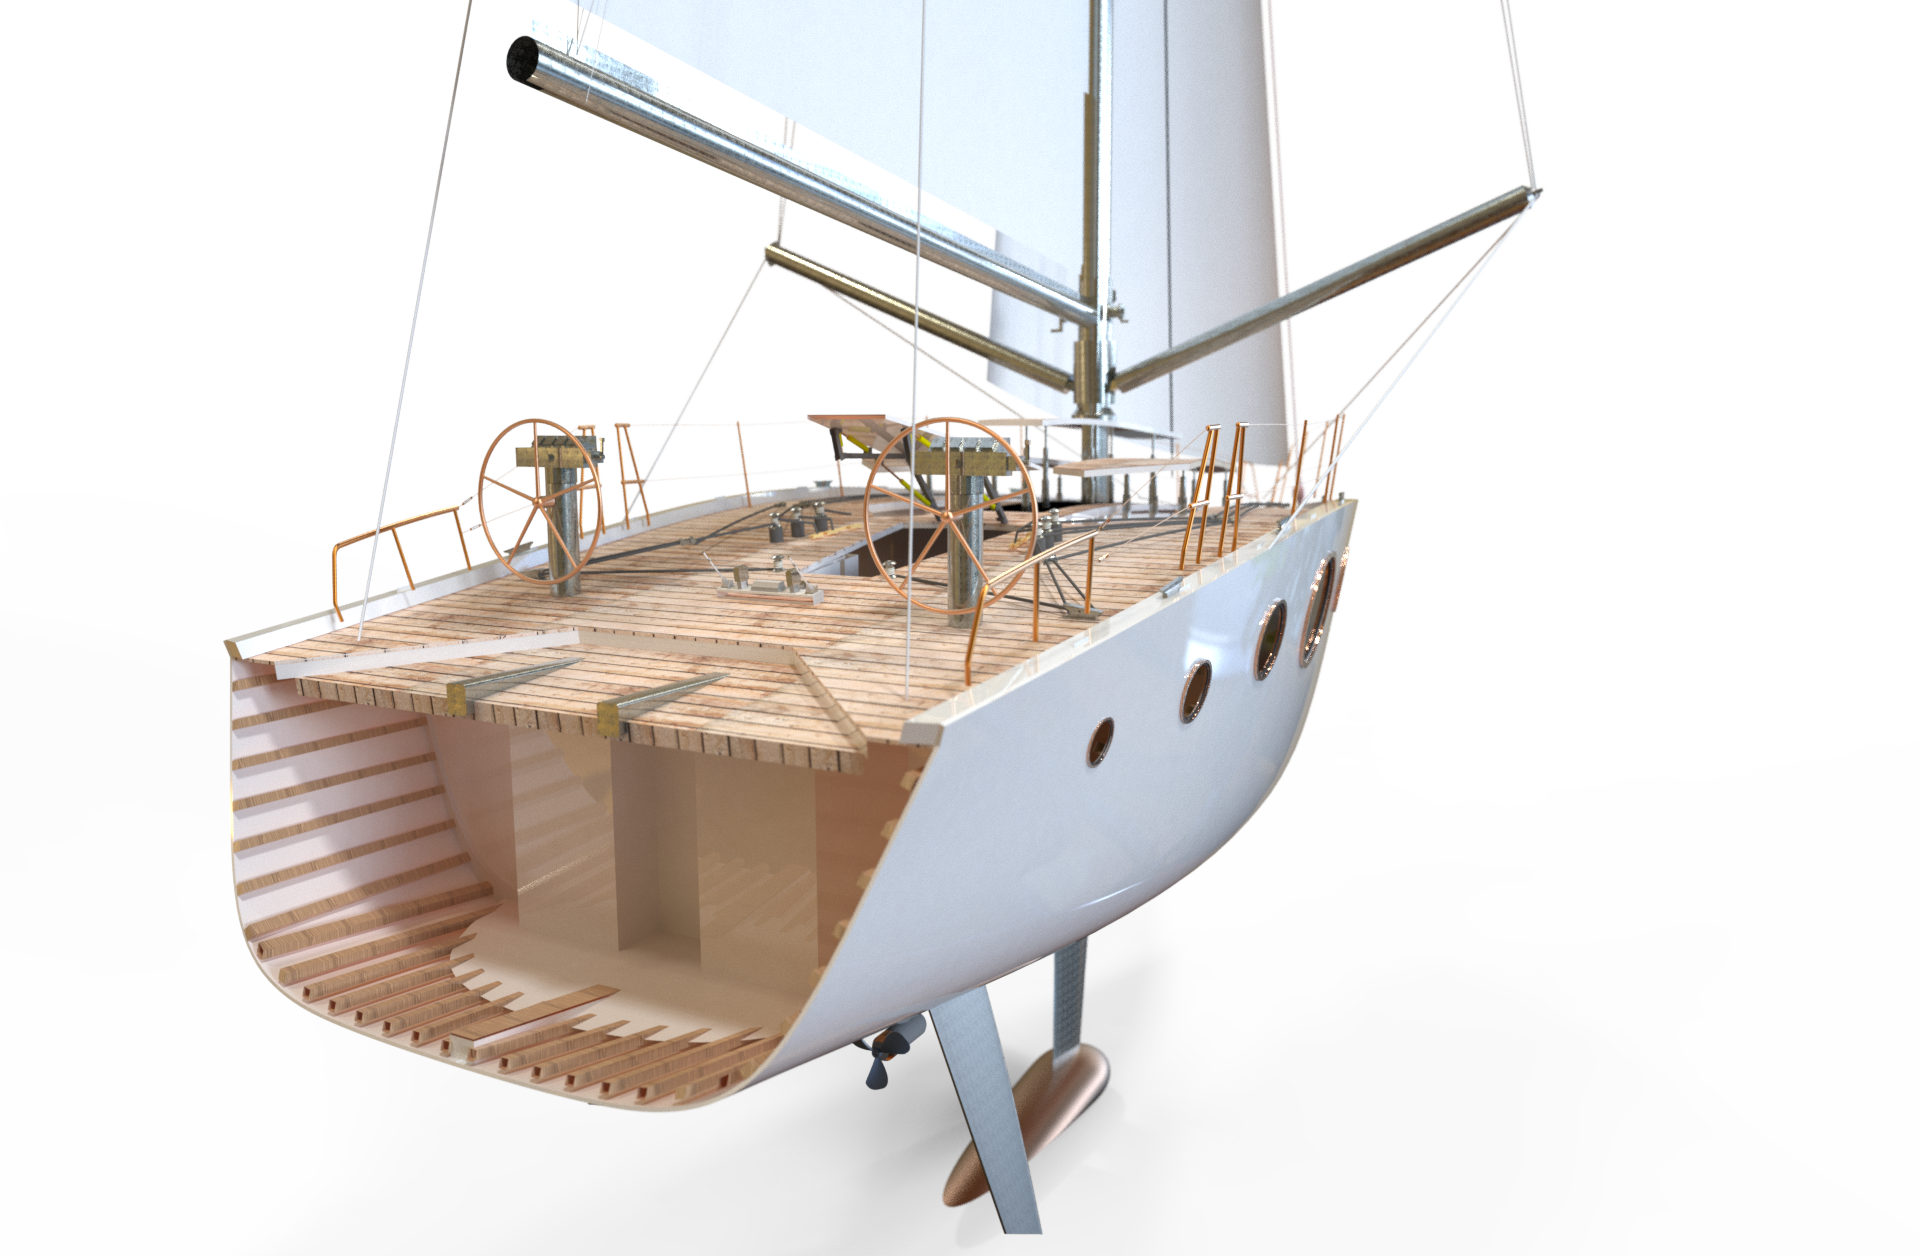 TAMARRA 45' | Sailboat section